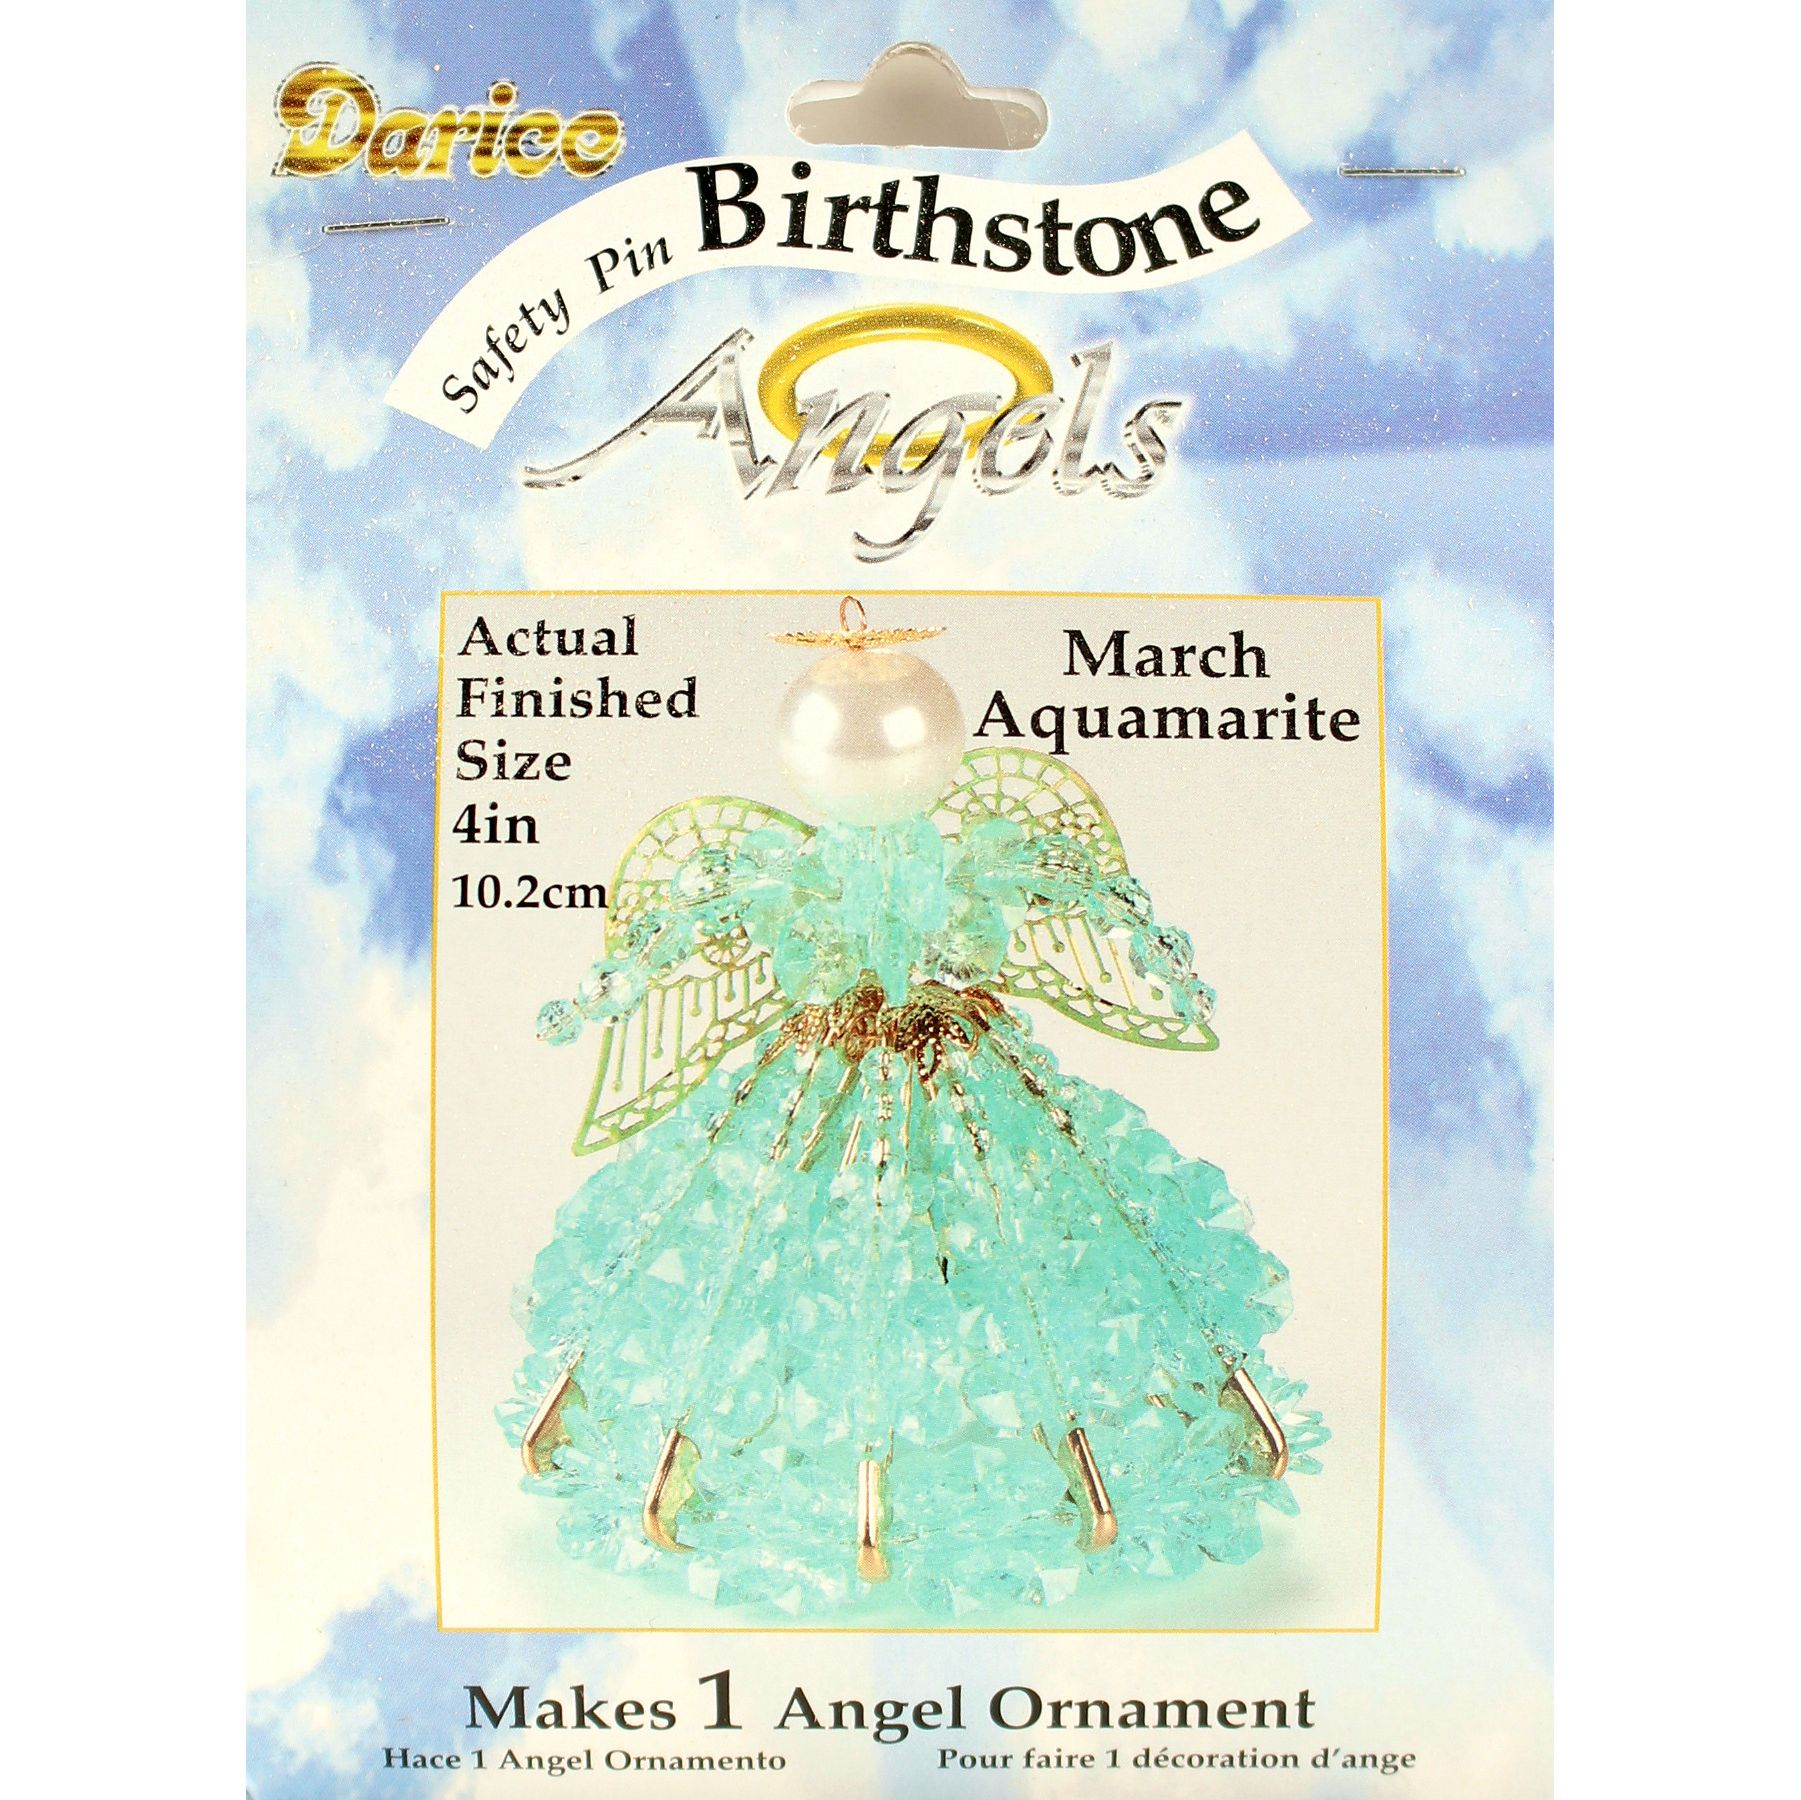 safety pin birthstone angels instructions